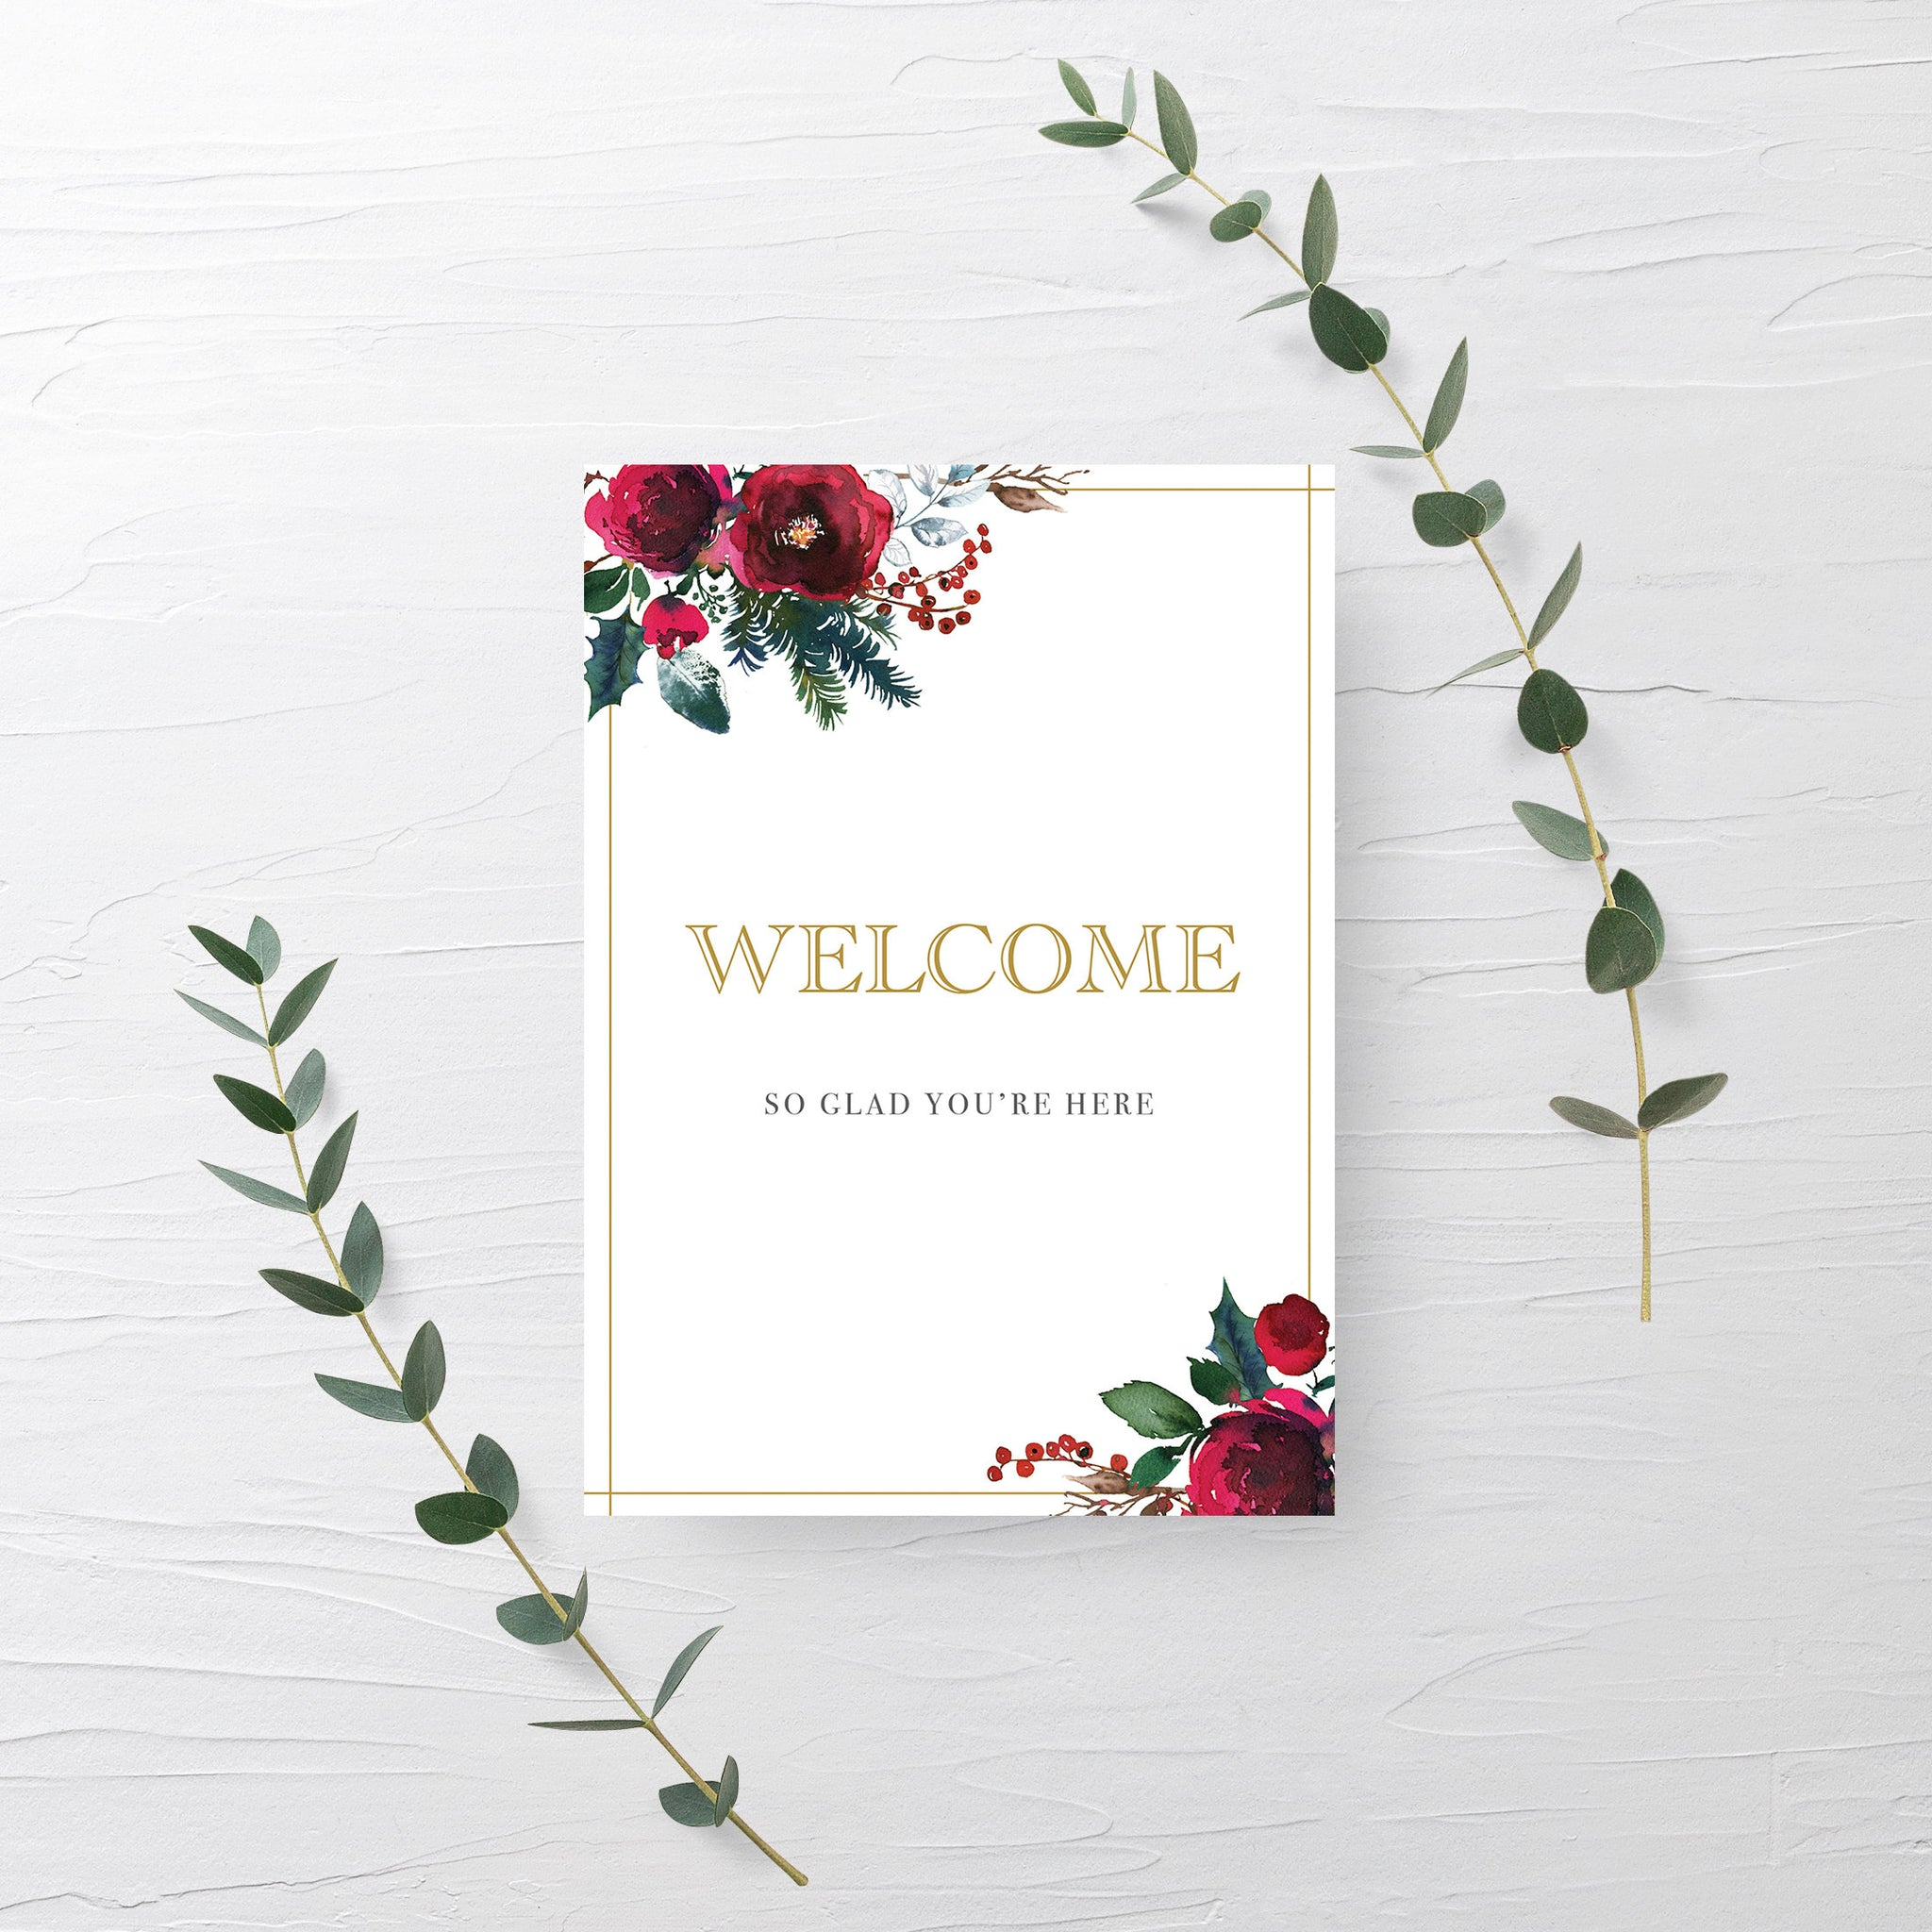 Christmas Party Welcome Sign, Holiday Party Decor, Christmas Baby Shower Decorations, Bridal Shower Printable, INSTANT DOWNLOAD - CG100 - @PlumPolkaDot